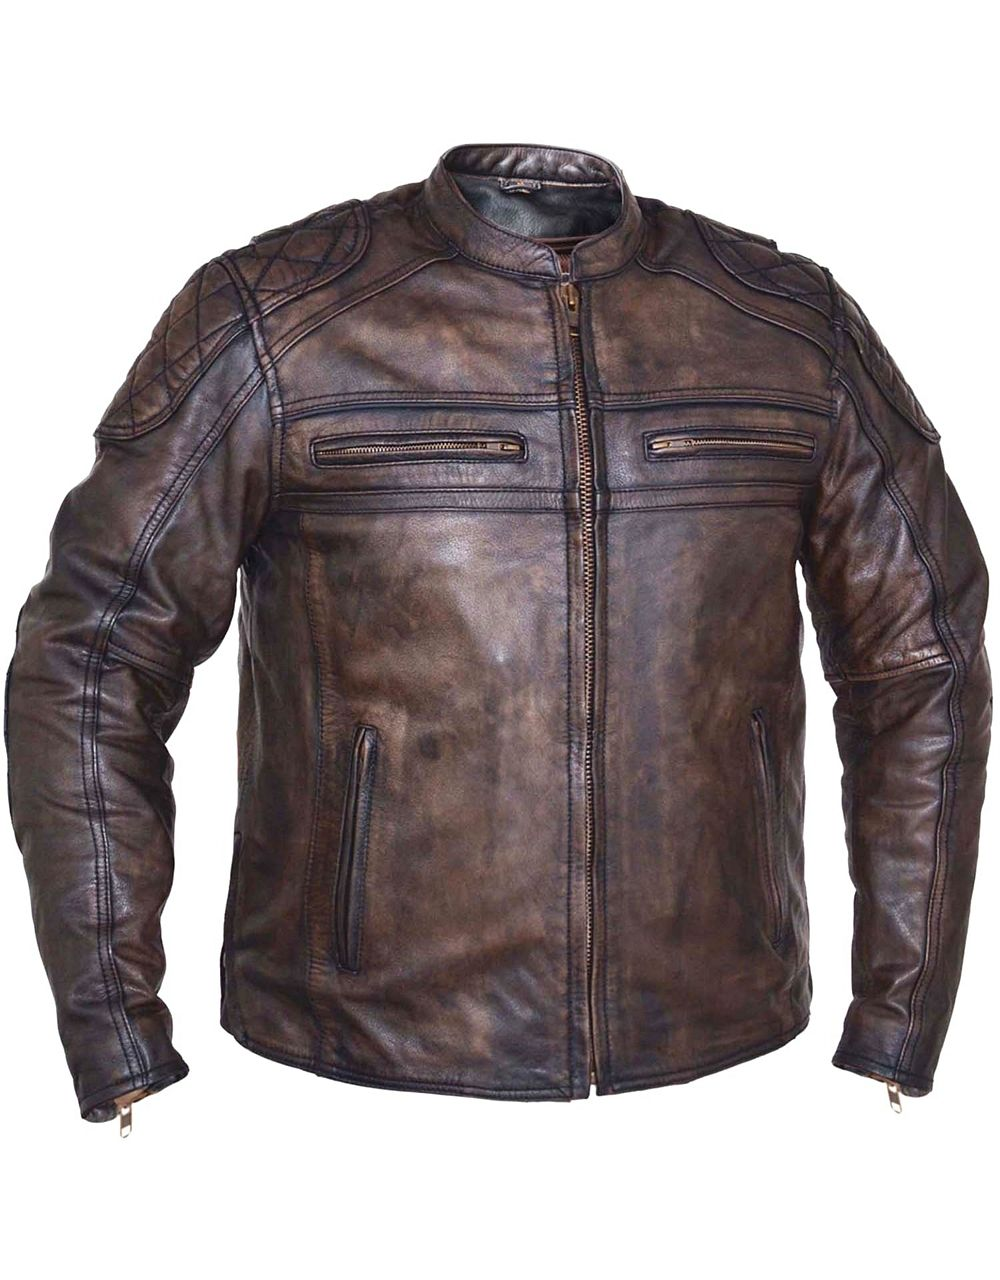 Pin On Leather Apparel